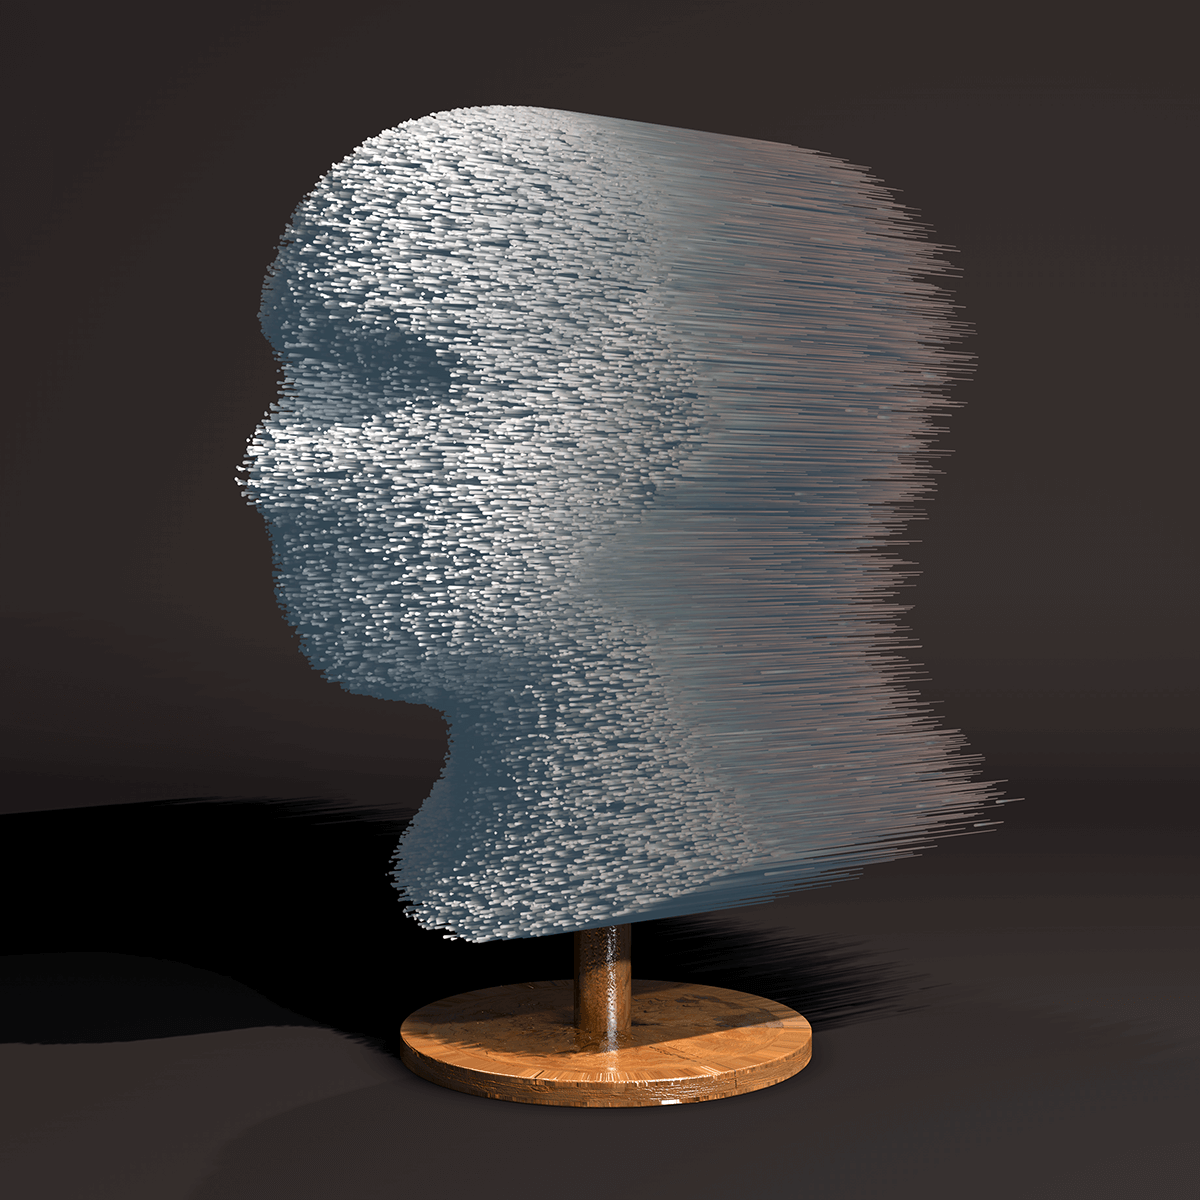 3D render of a human head bust build up out of thin straws